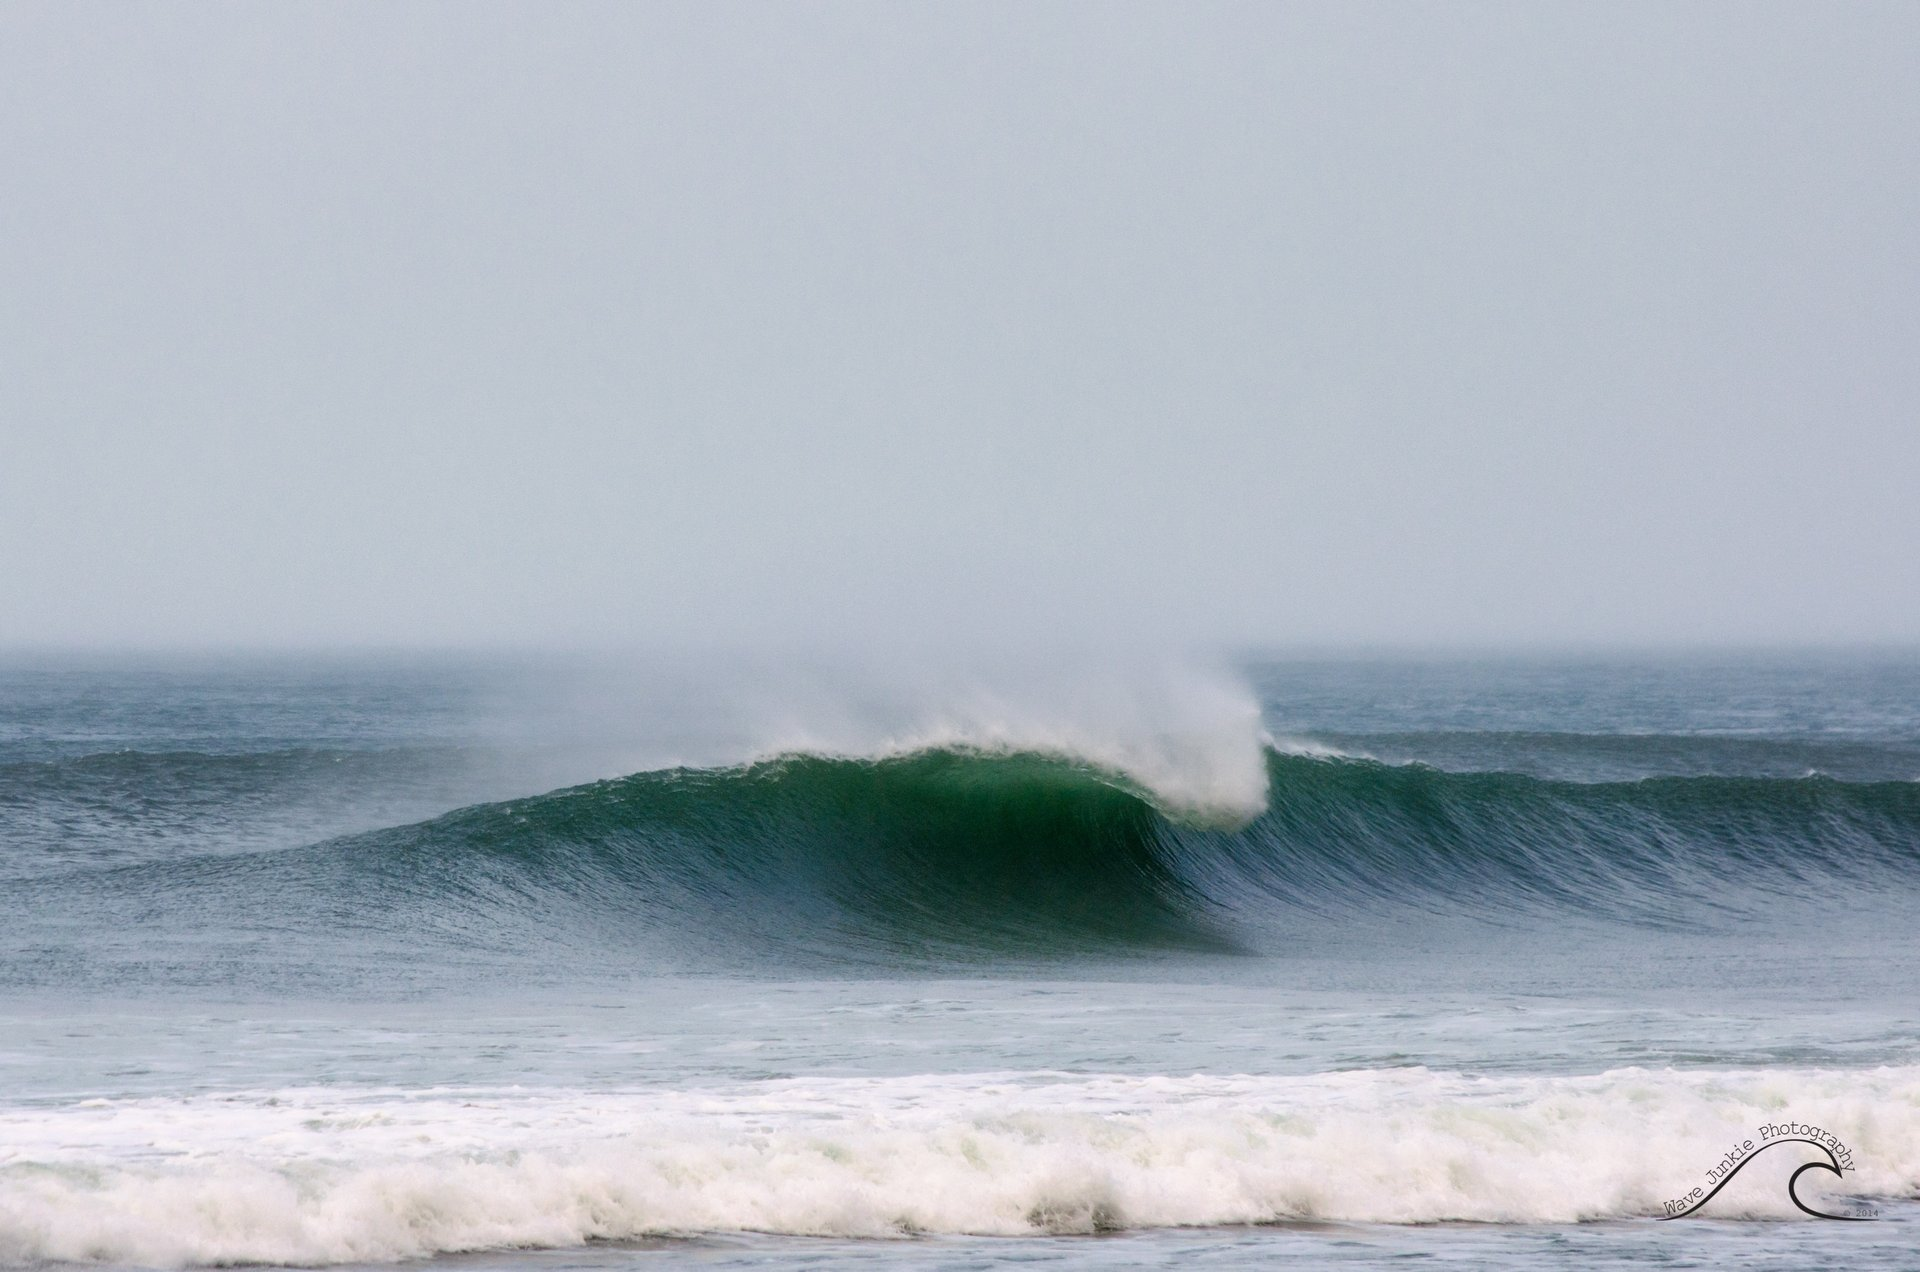 Matthew Loots's photo of Porthmeor